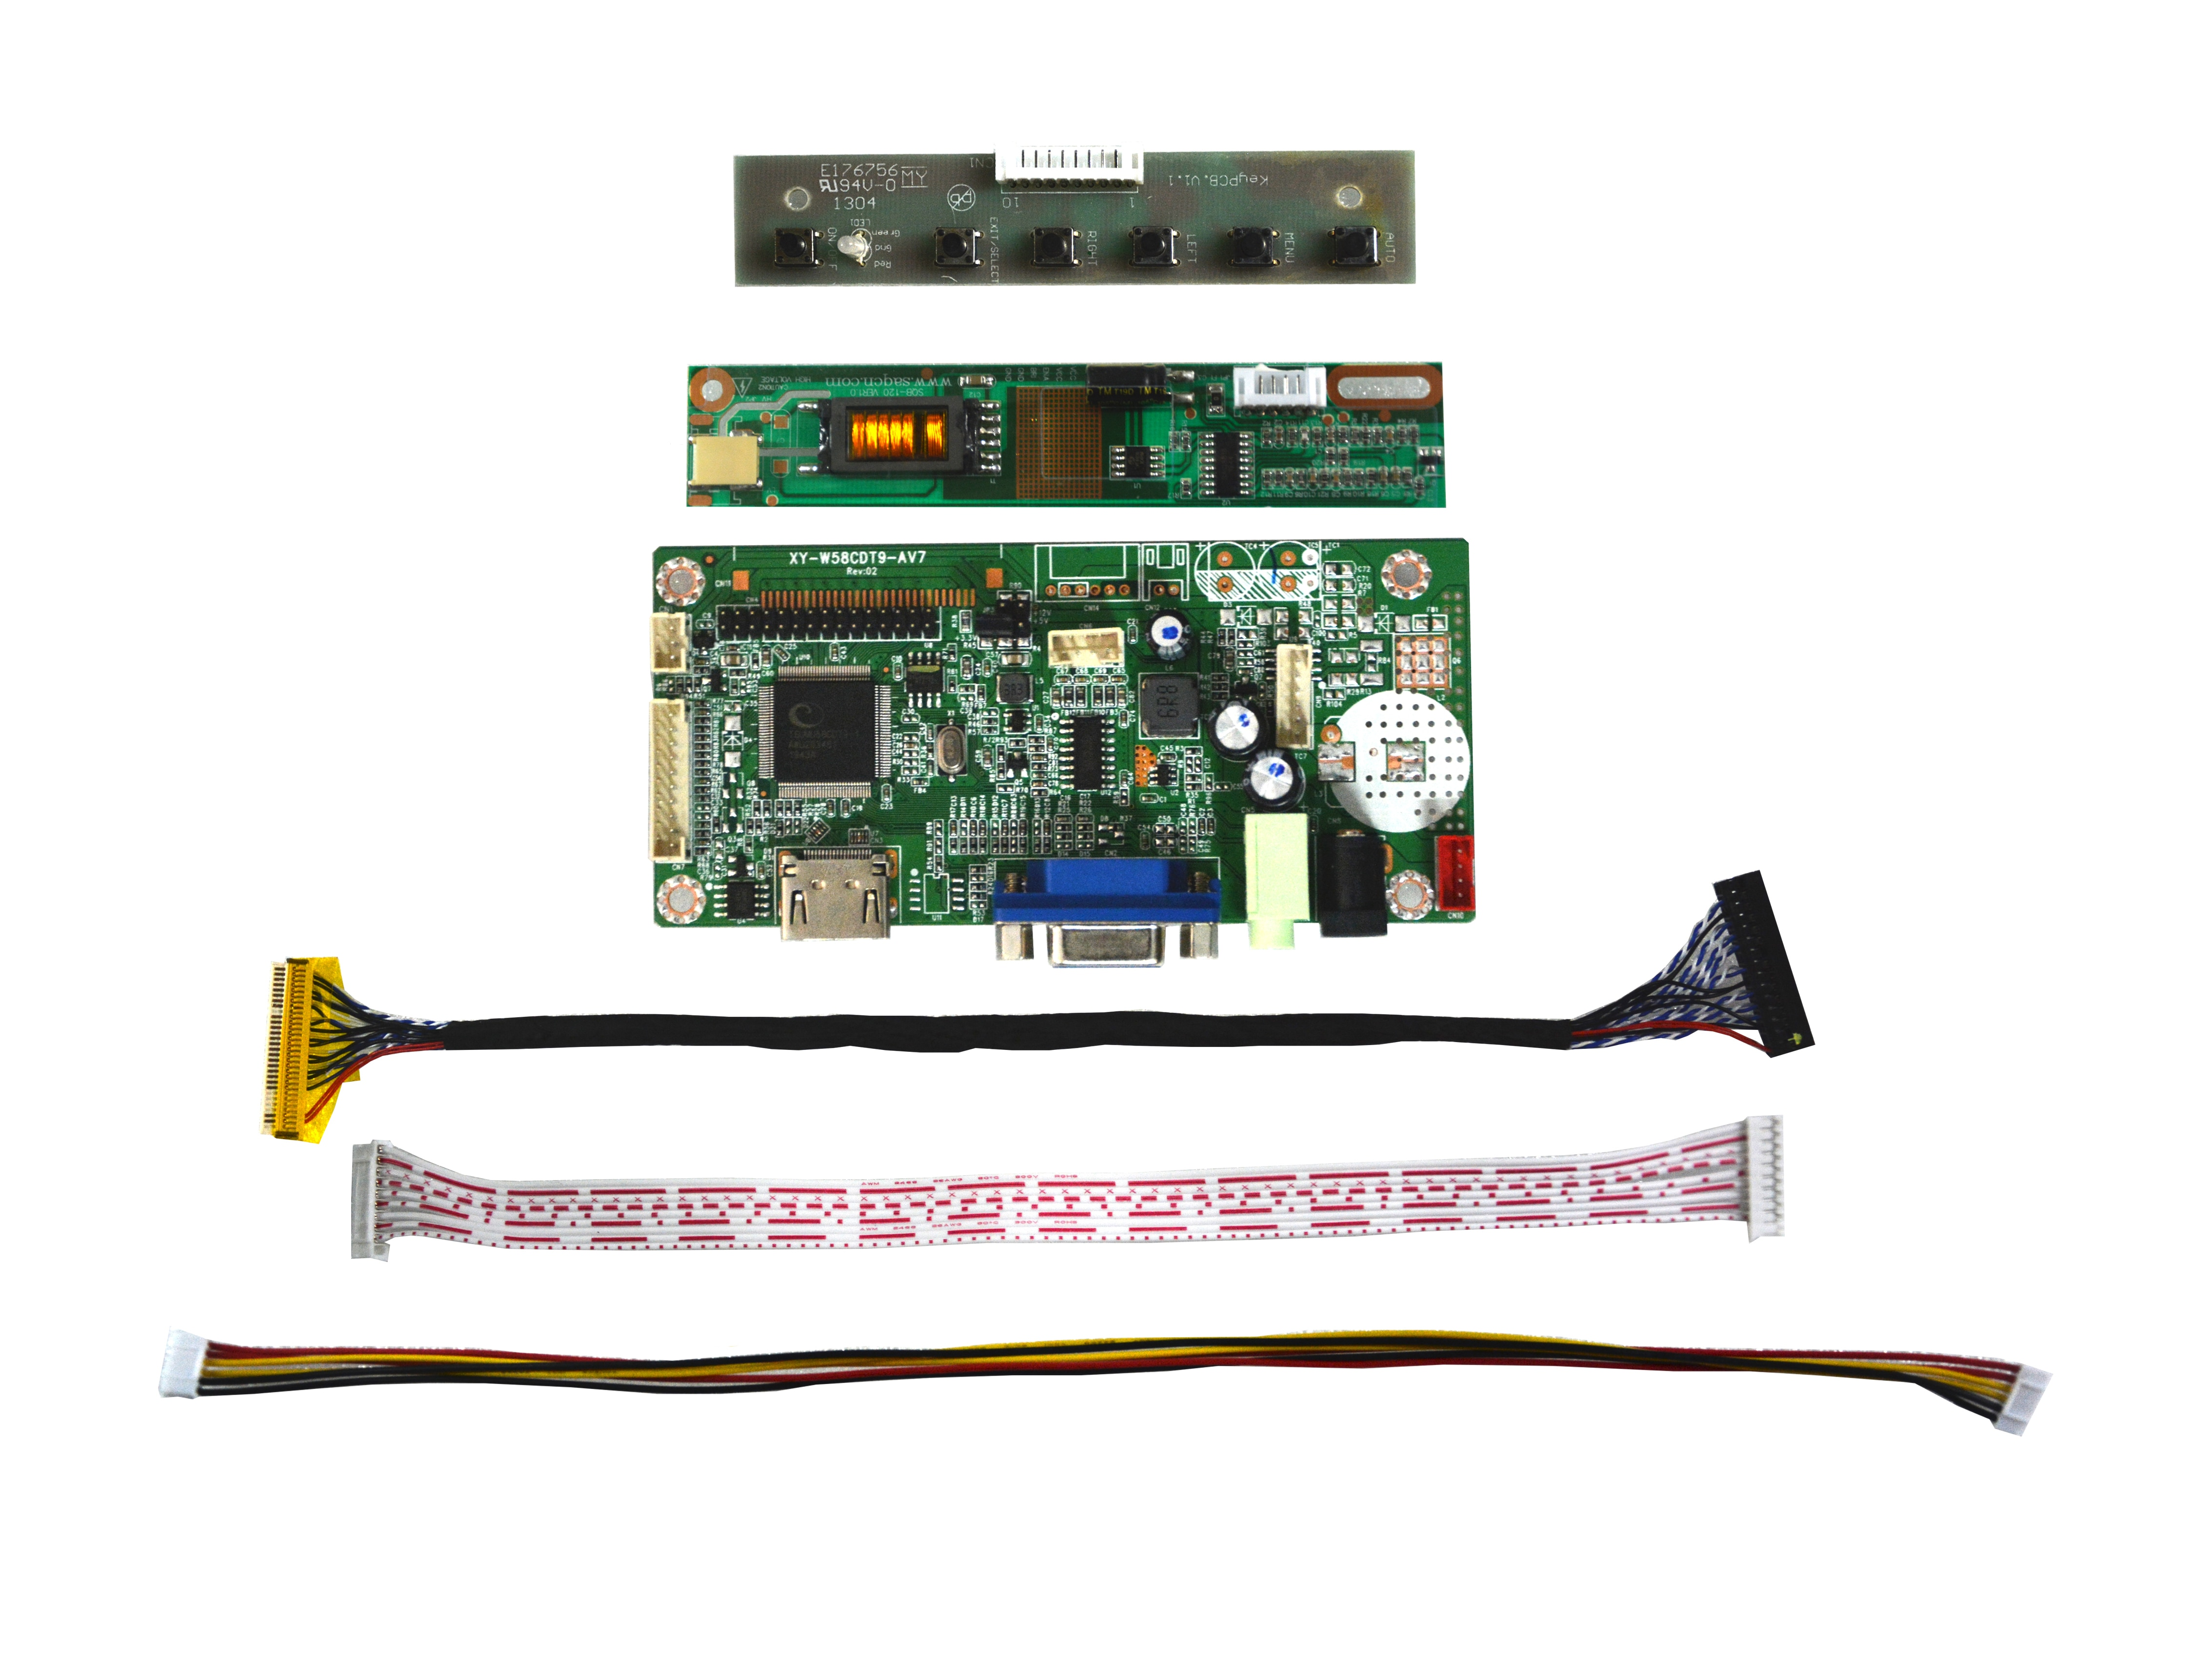 Free Shipping 58C HDMI VGA LVDS LCD Controller Board Kit For 17inch B170PW01B170PW06 V.2 1440x900 LED Screen